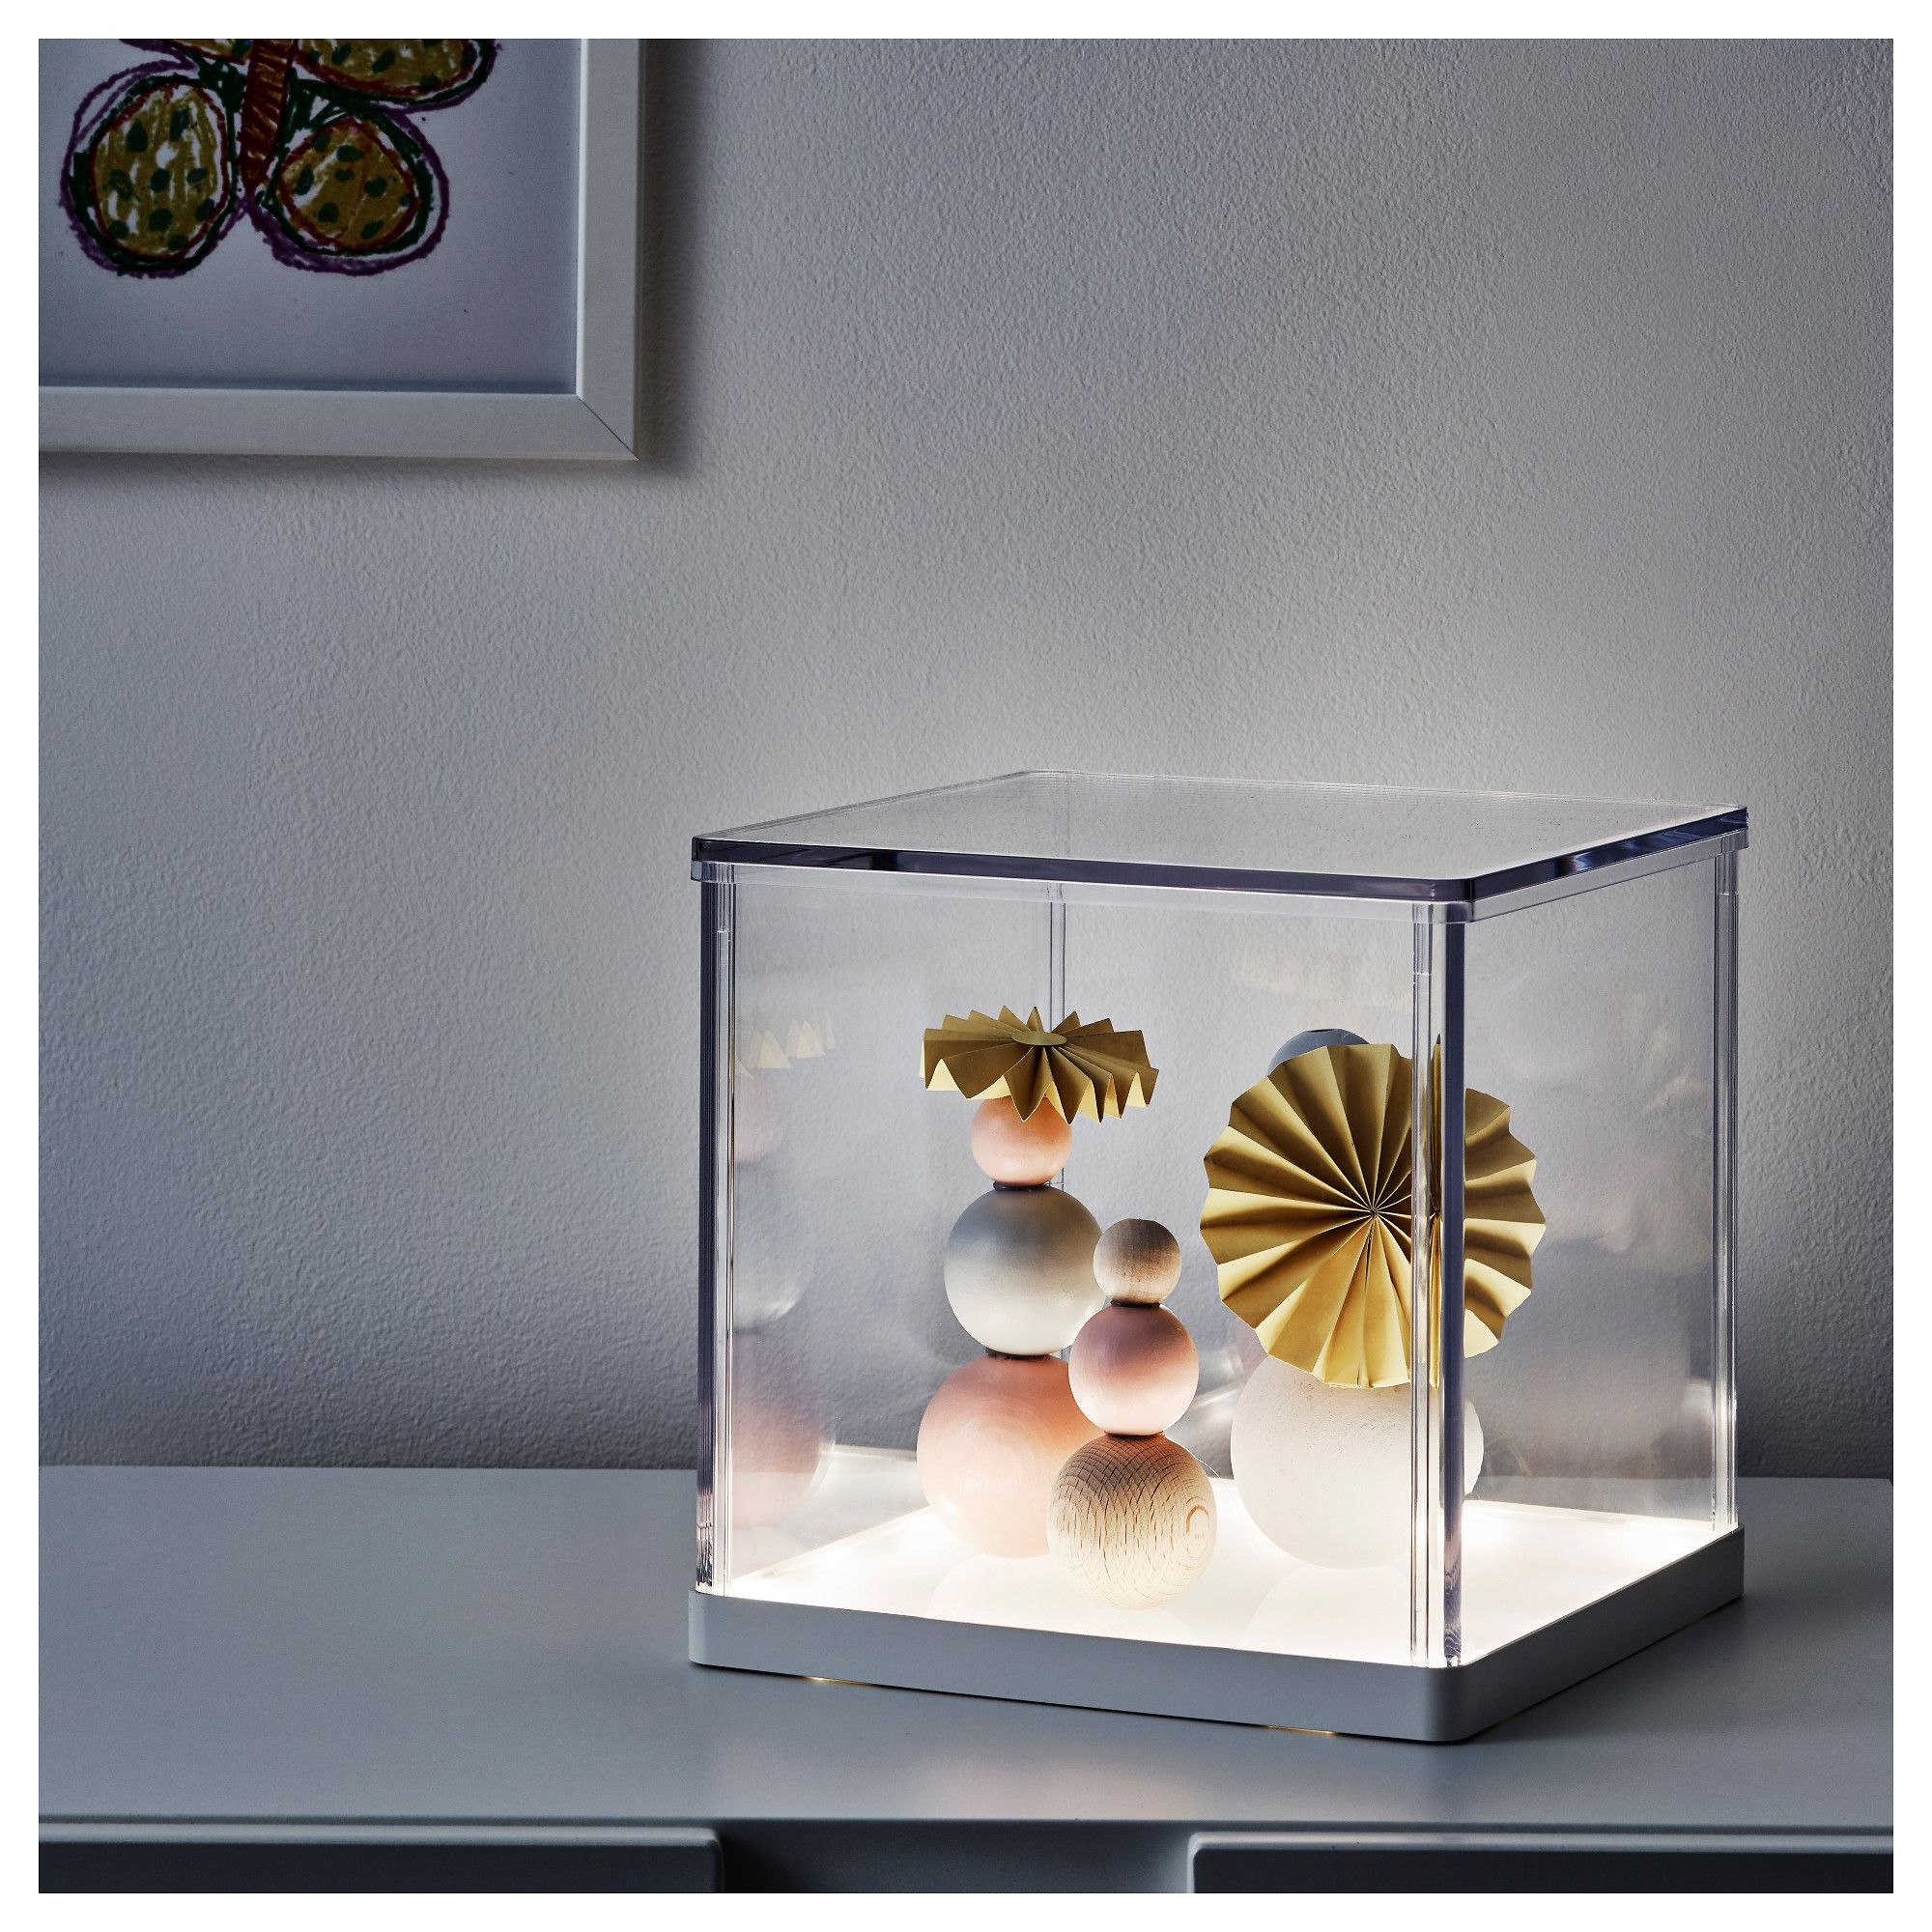 40 Synas Led Lighting Box Ikea For Collectibles In 2019